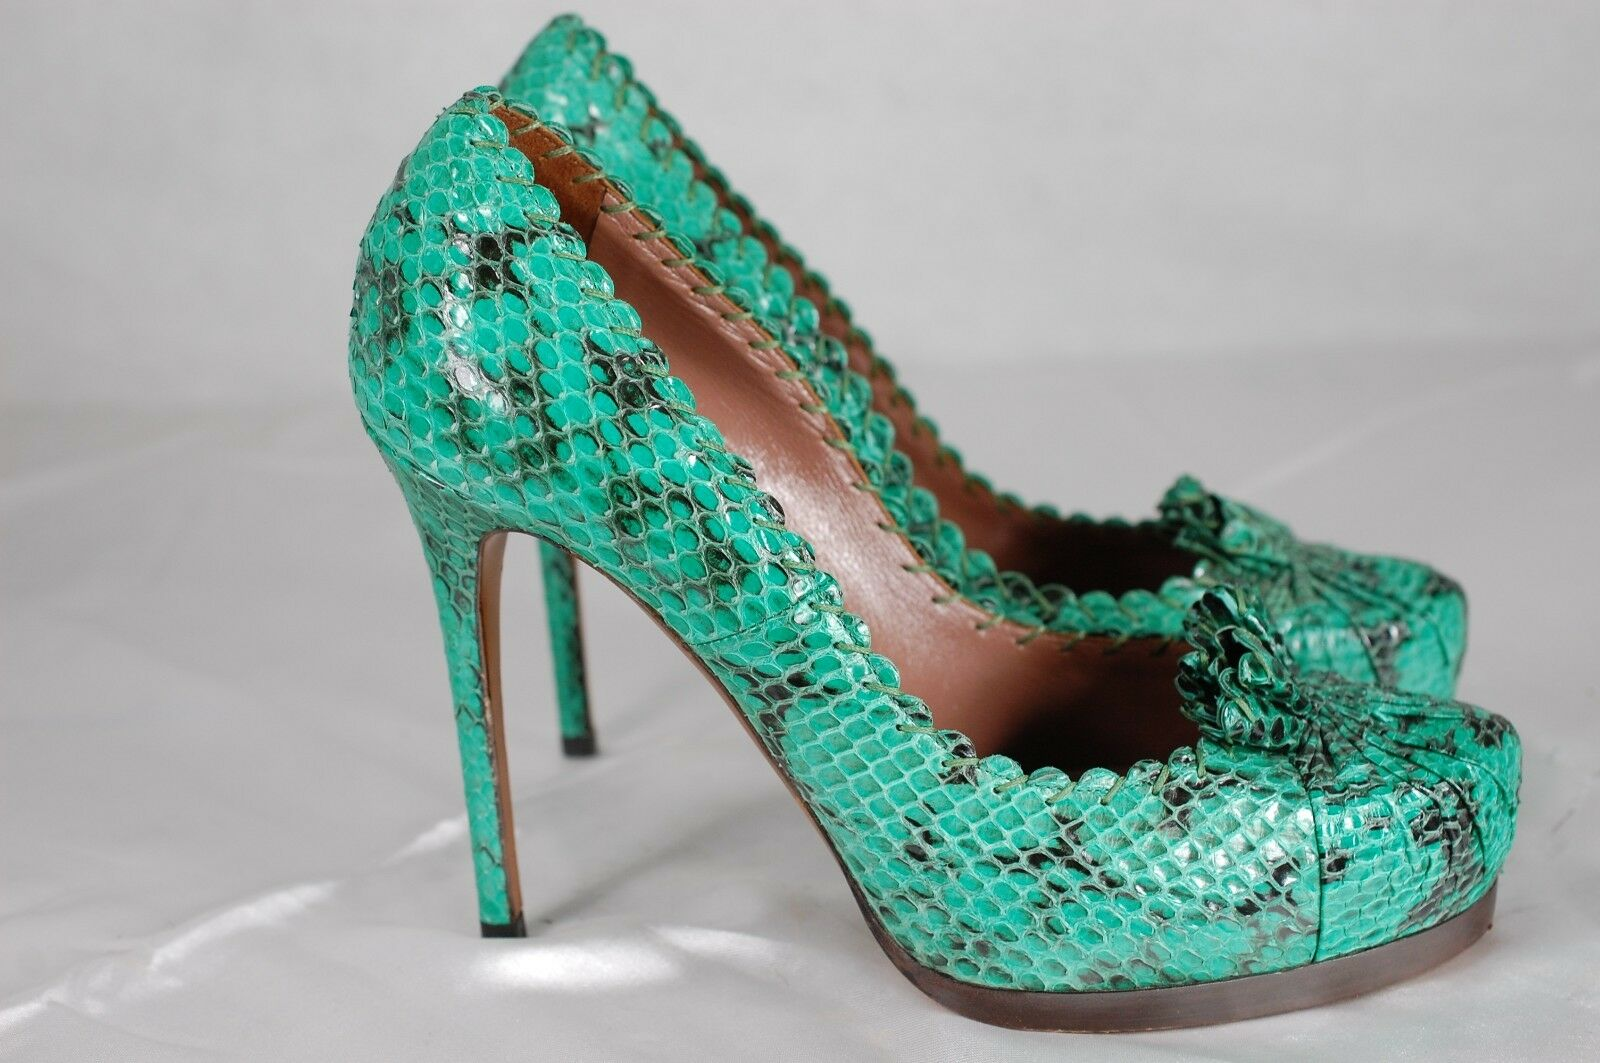 SUPPER BEAUTIFUL    Tabitha Simmons vert vert vert SNAKESKIN HIGH HEEL PUMPS  EU 39 US 9 4dd982